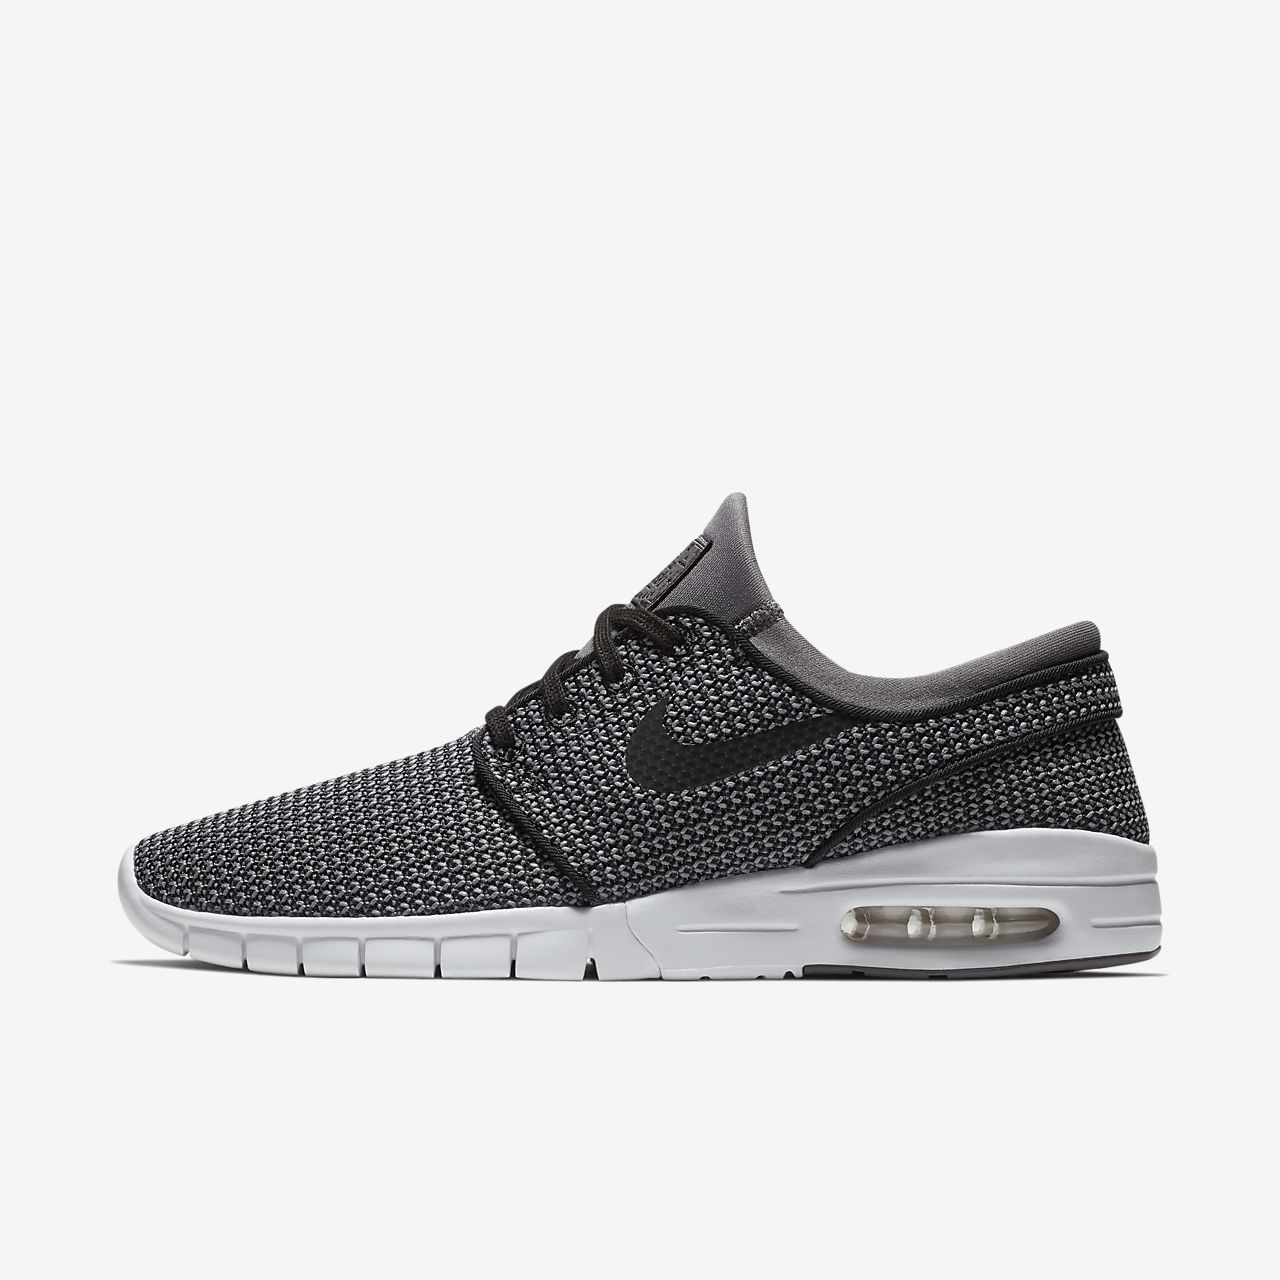 Nike SB Stefan Janoski Max L Men's Lifestyle Shoes Black/White aL2695V